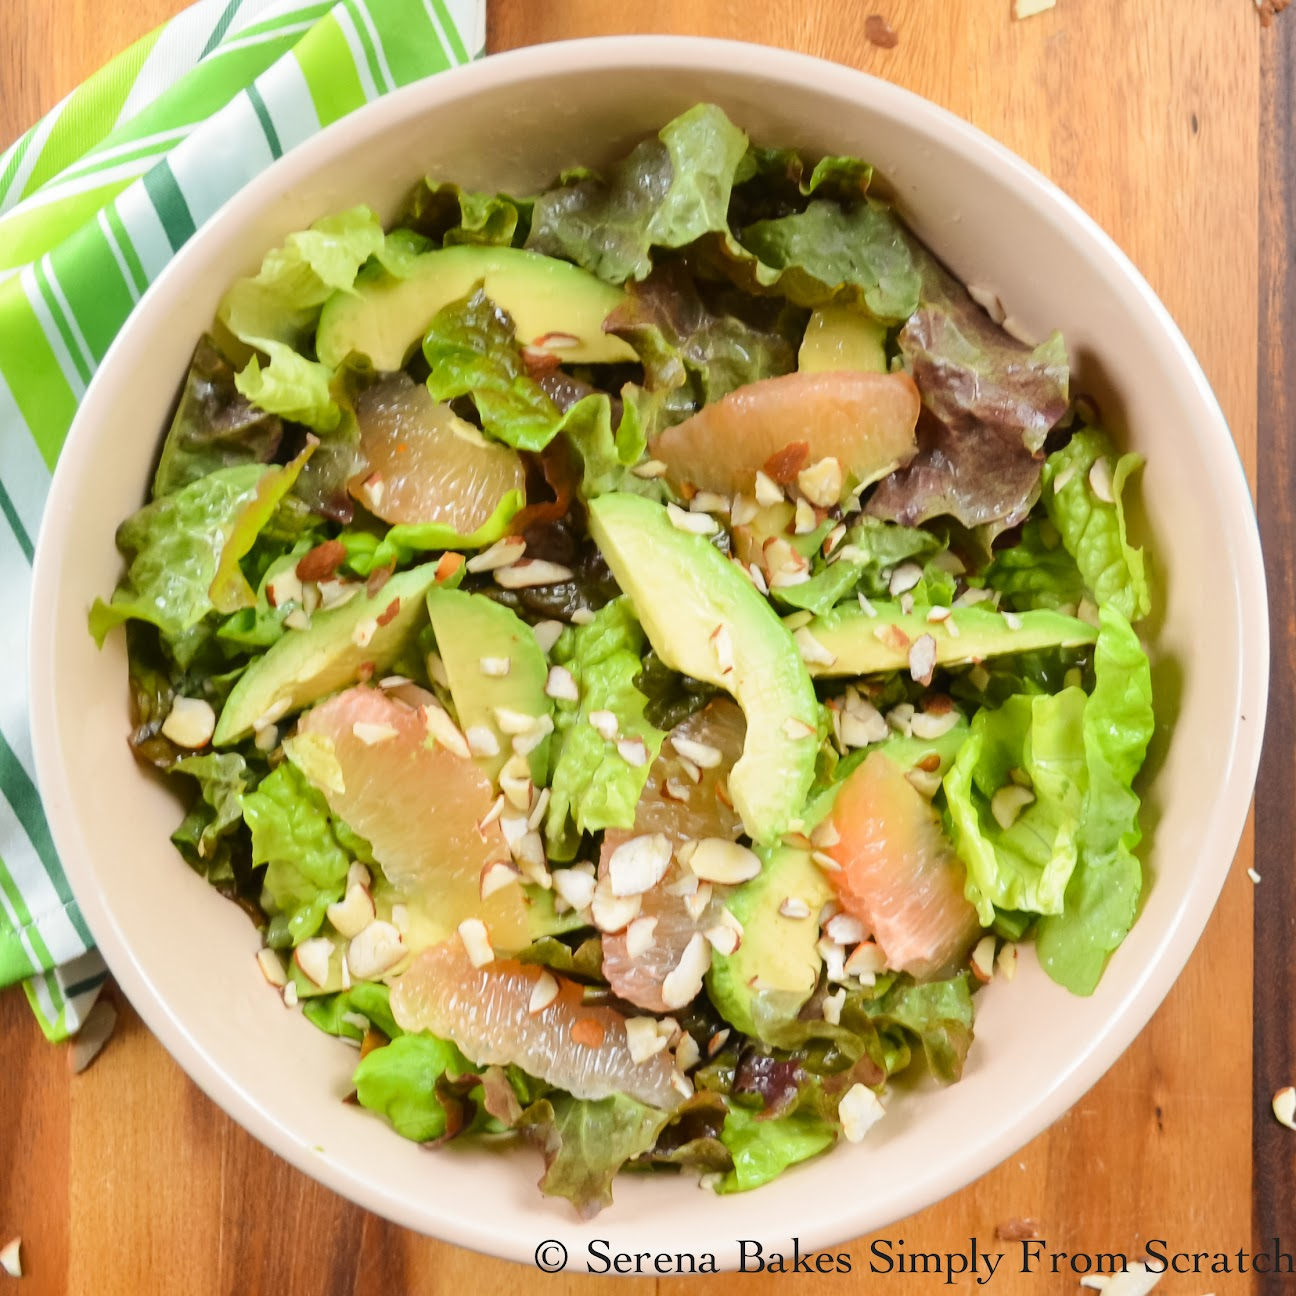 Grapefruit Avocado Salad With Grapefruit Vinaigrette